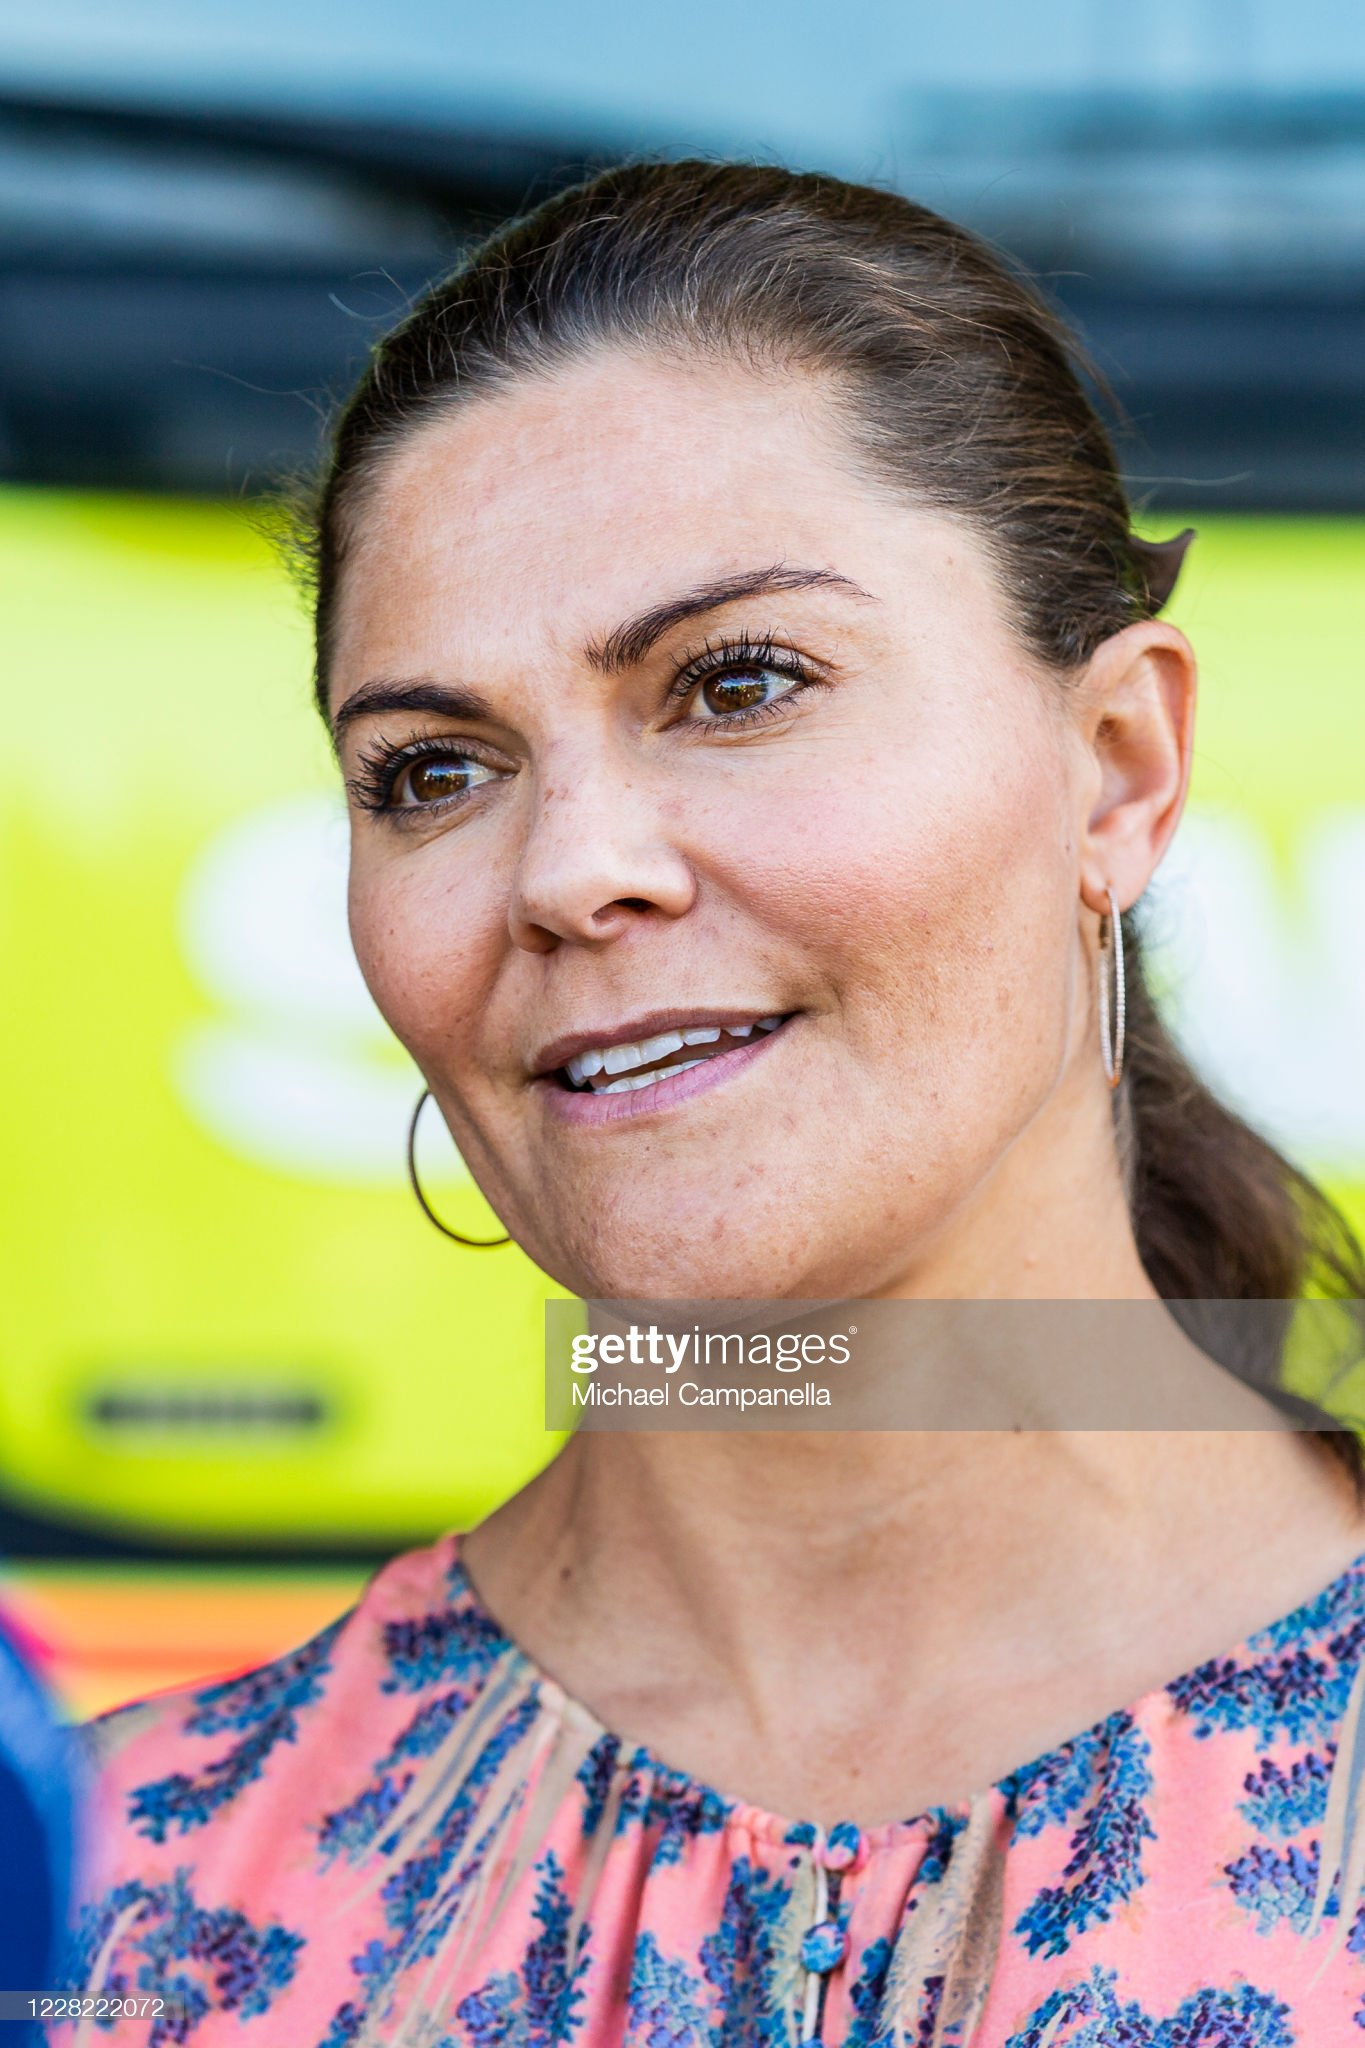 crown-princess-victoria-of-sweden-visits-an-ambulance-station-in-the-picture-id1228222072